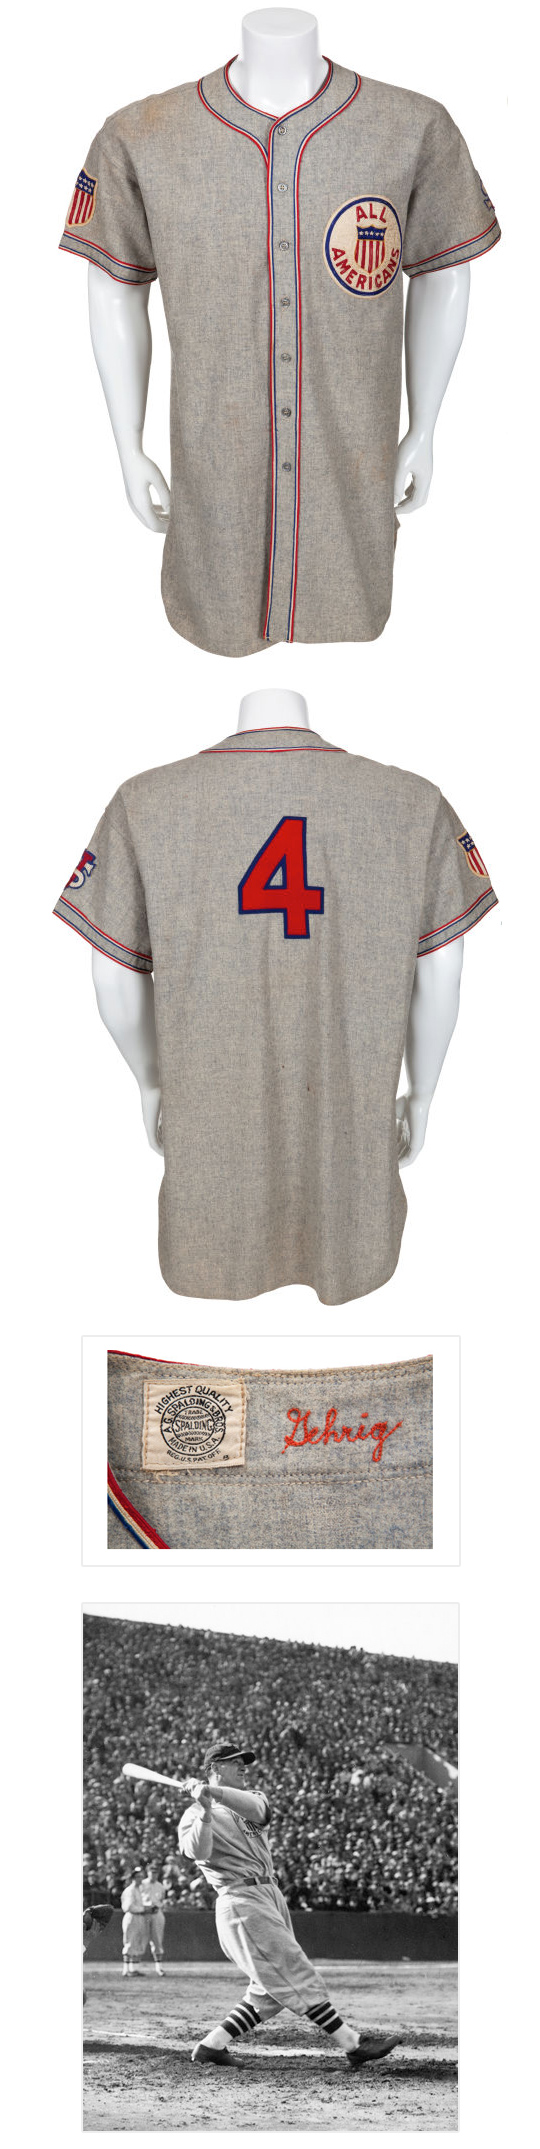 1934 Lou Gehrig Tour of Japan Game Worn Uniform.